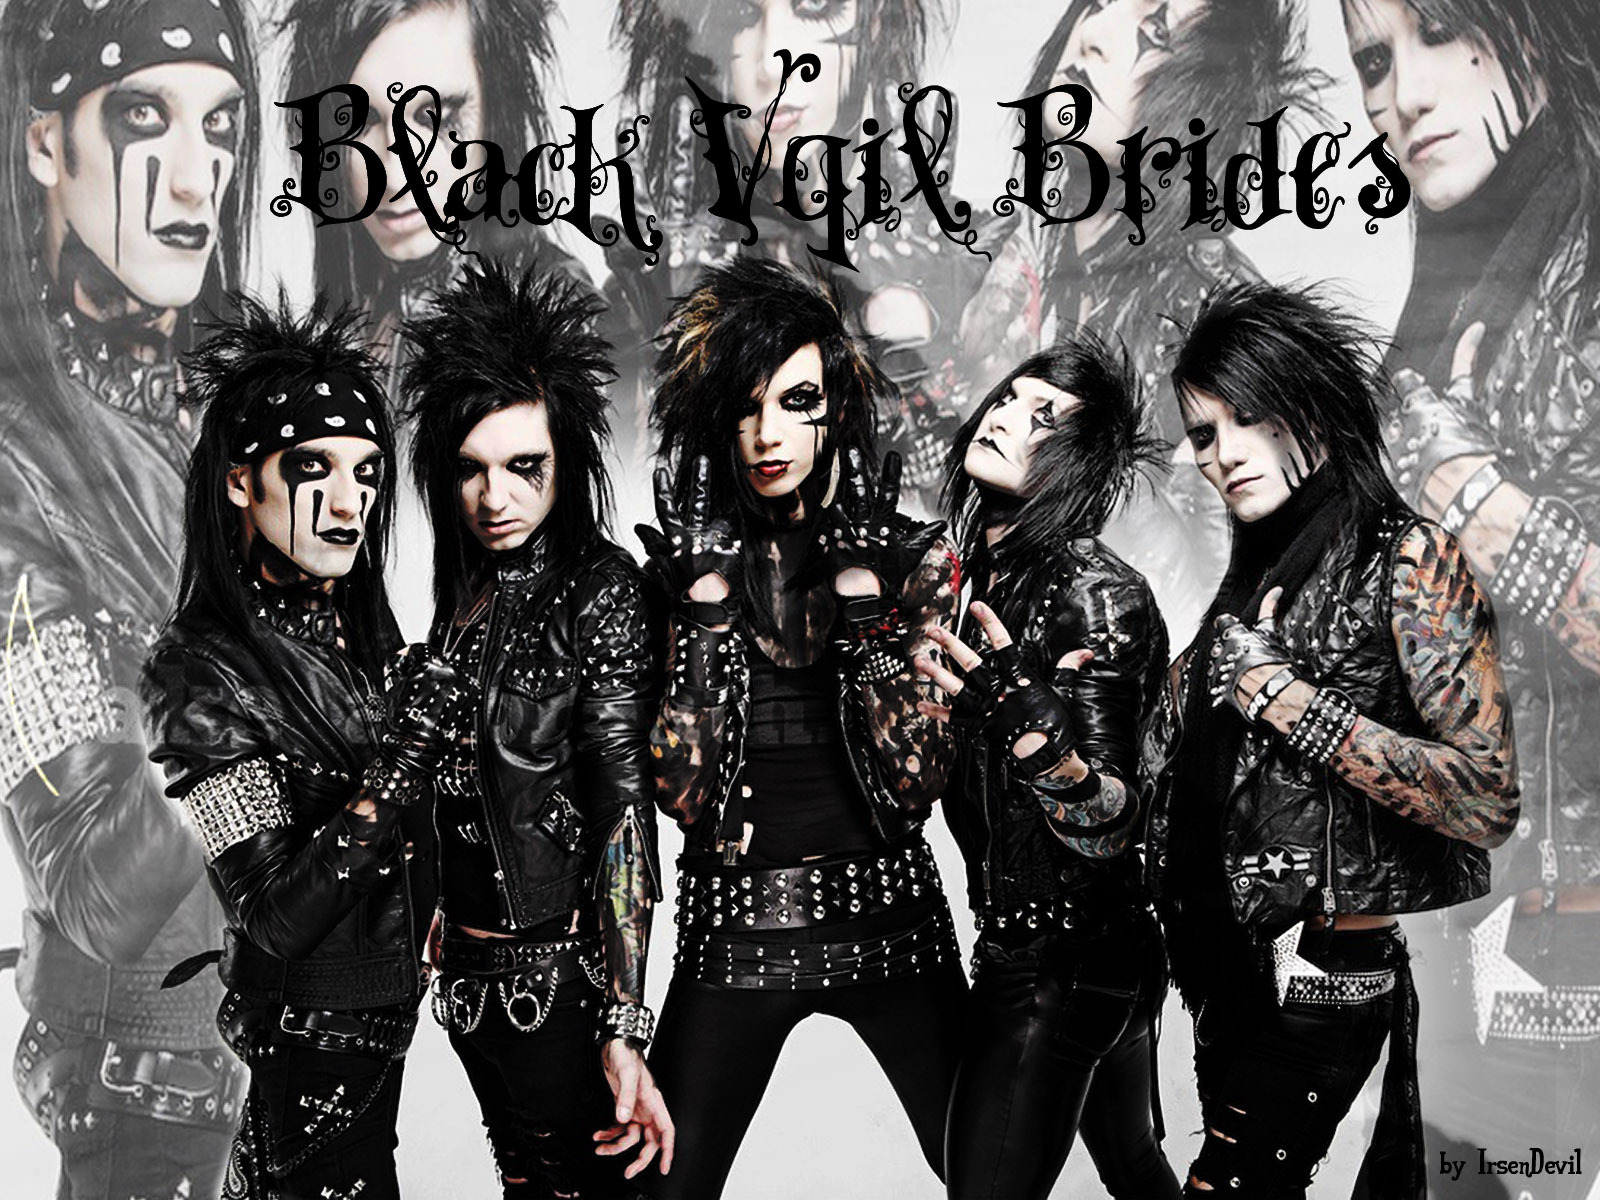 Altwall Black Veil Brides wallpaper 1600x1200